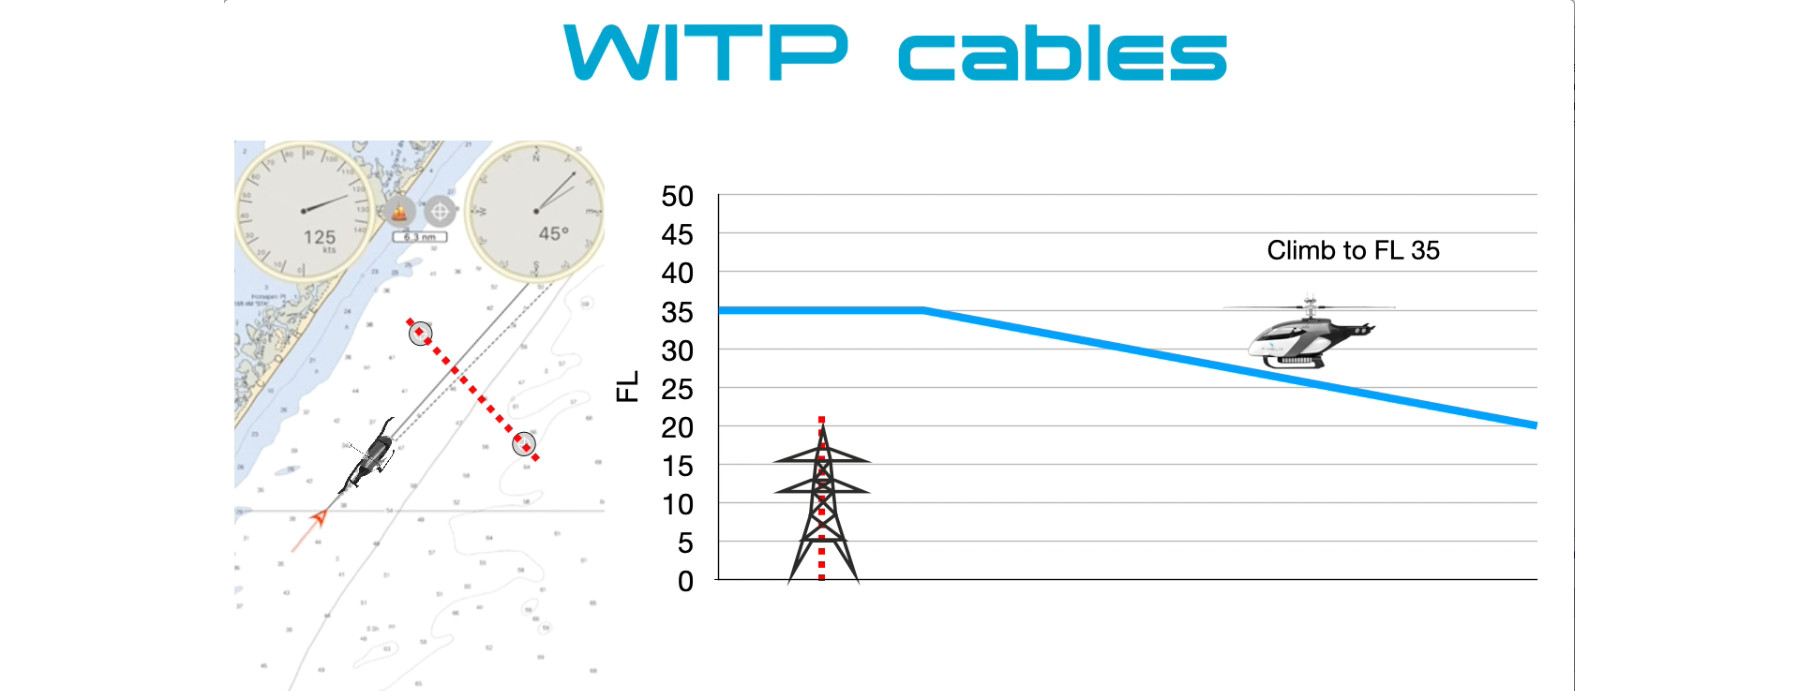 WITP Cables